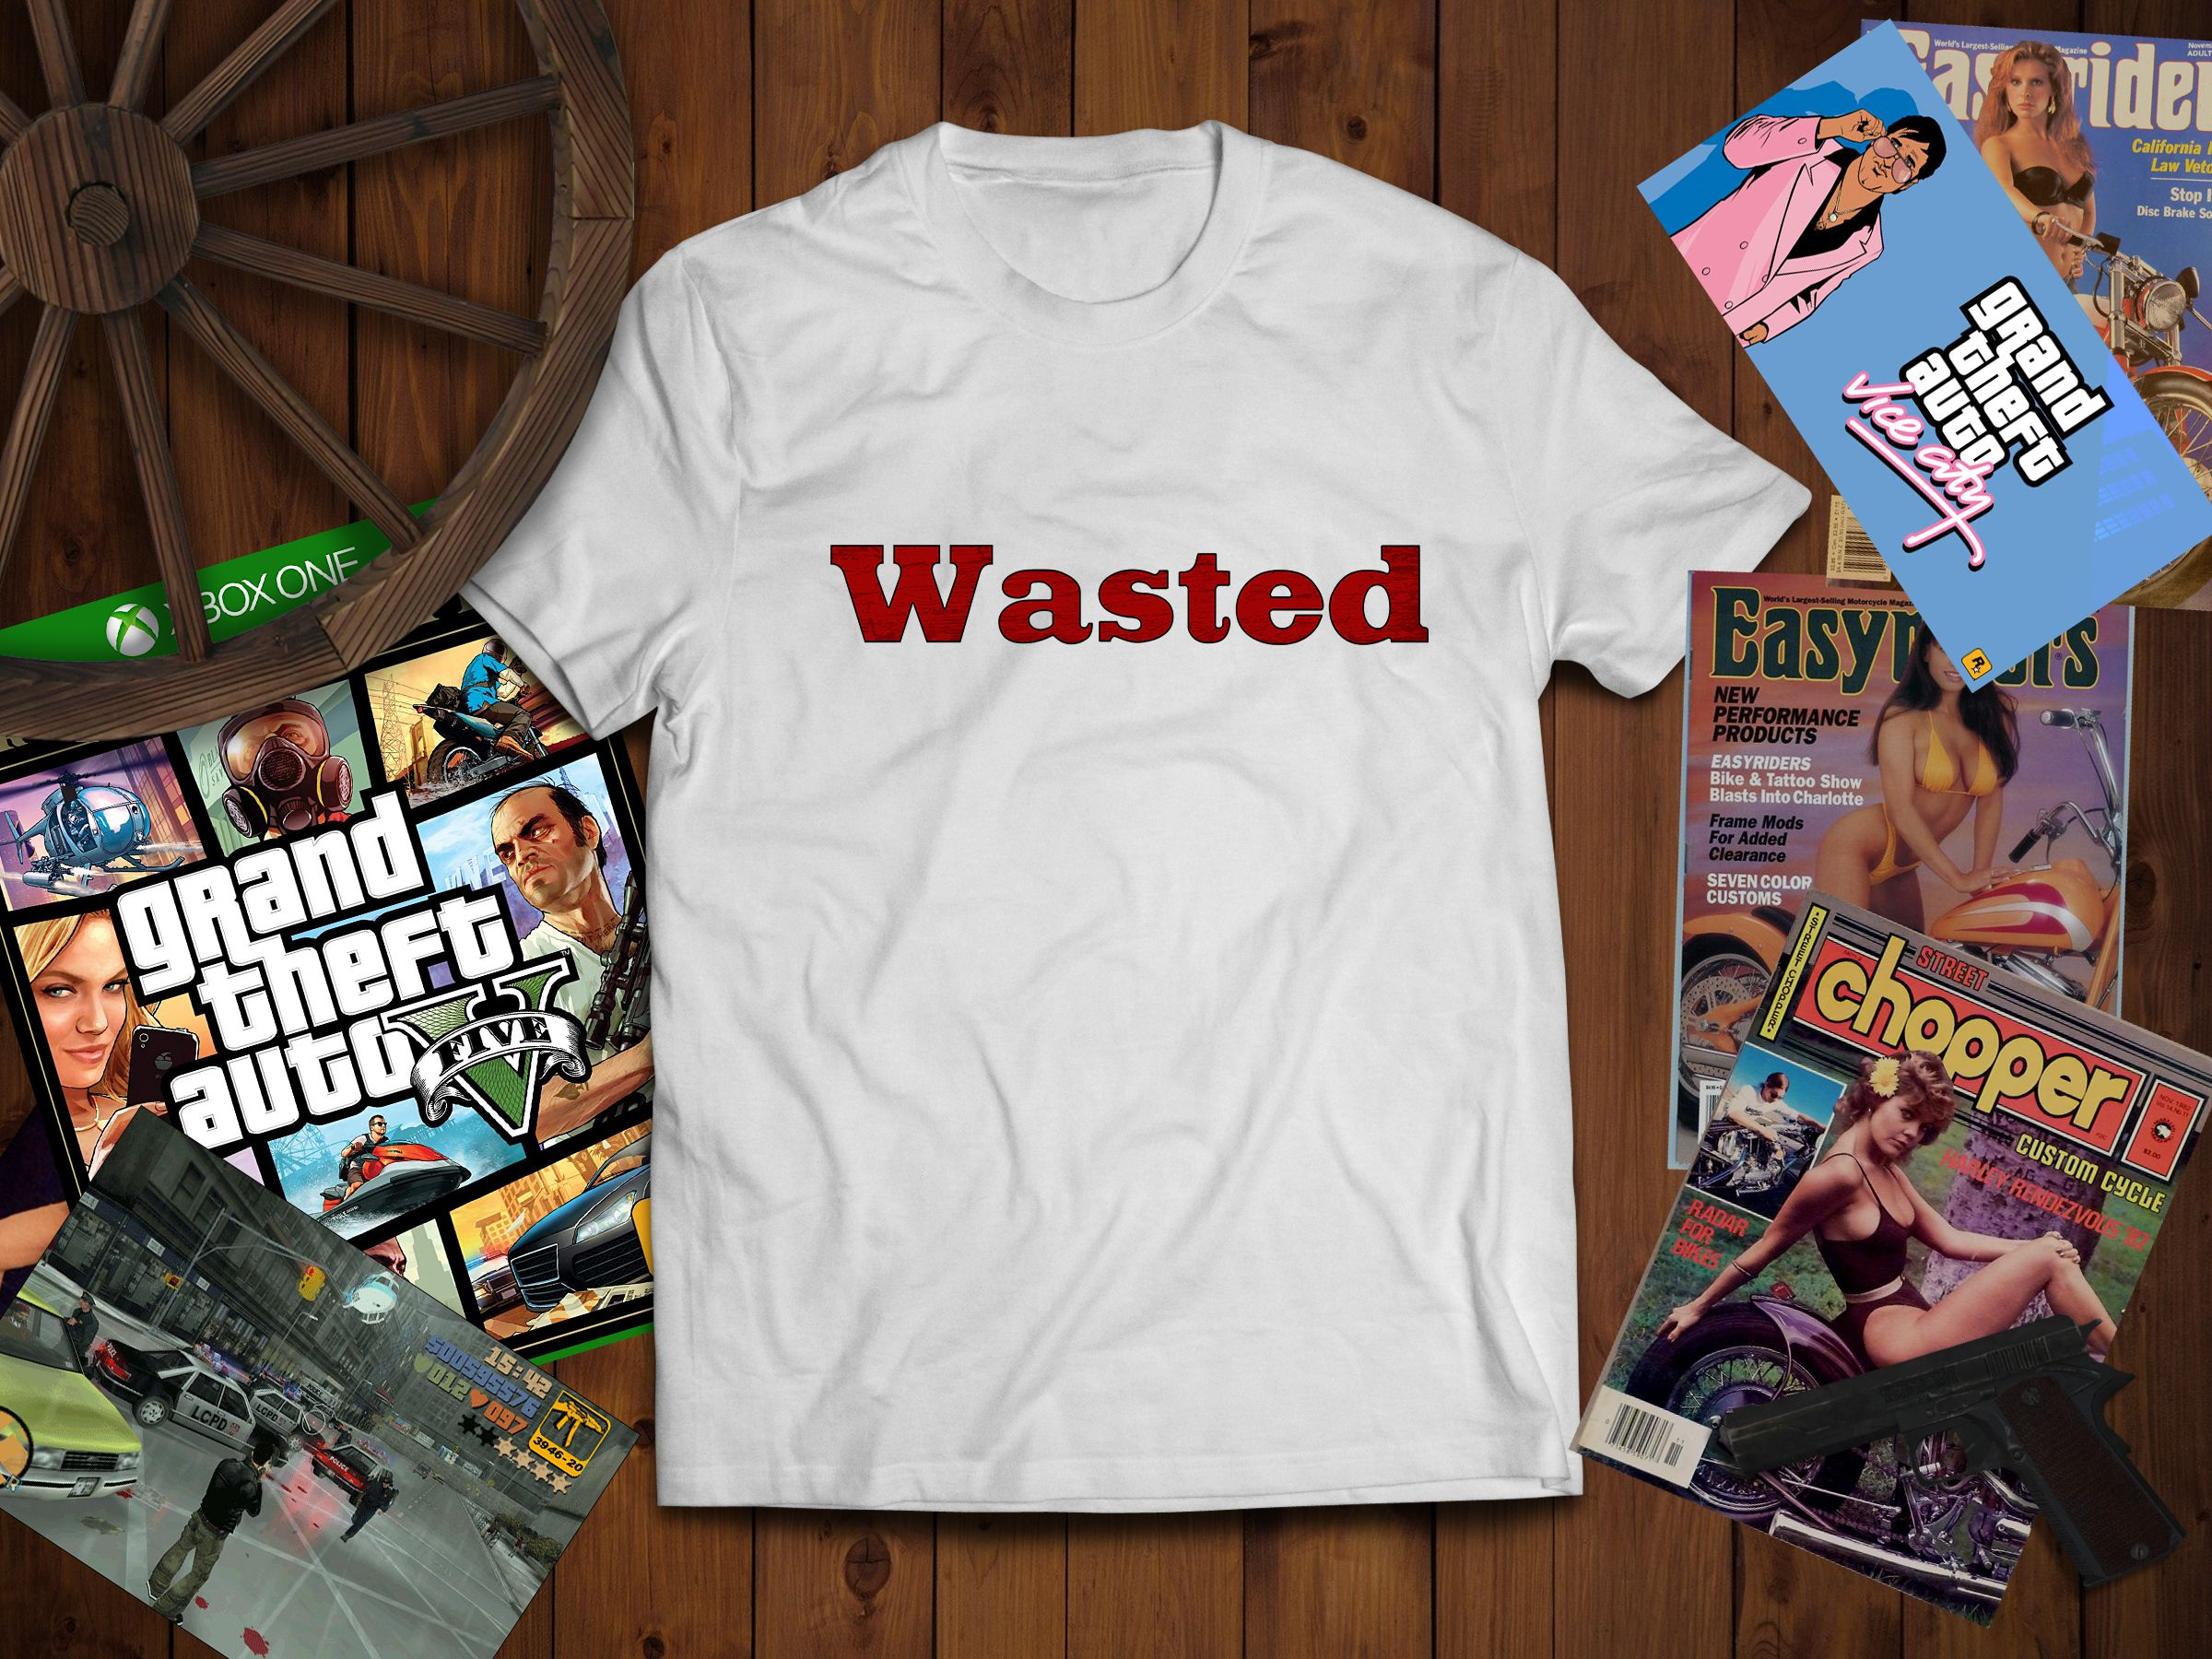 Wasted Grand Theft Auto T Shirt In 2020